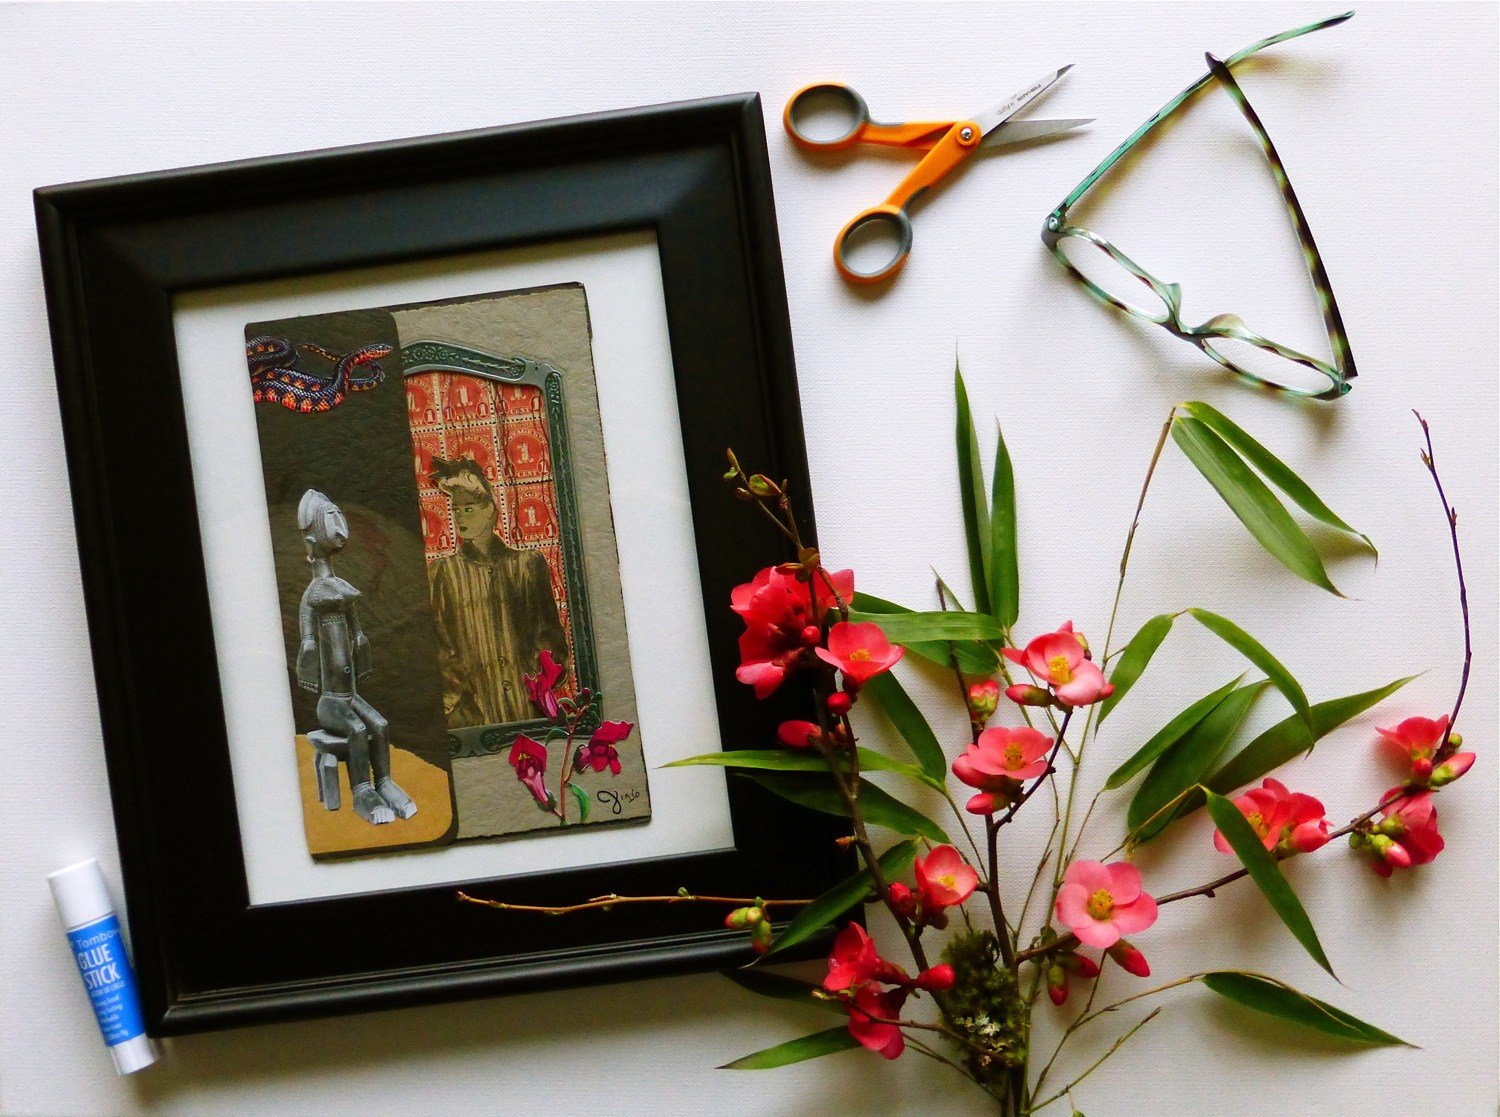 Two Women No. 2, collage, African sculpture, vintage newspaper cut out, antique postage stamps, antique photo frame, book cut images, black and red snake, red flowers, snap dragons